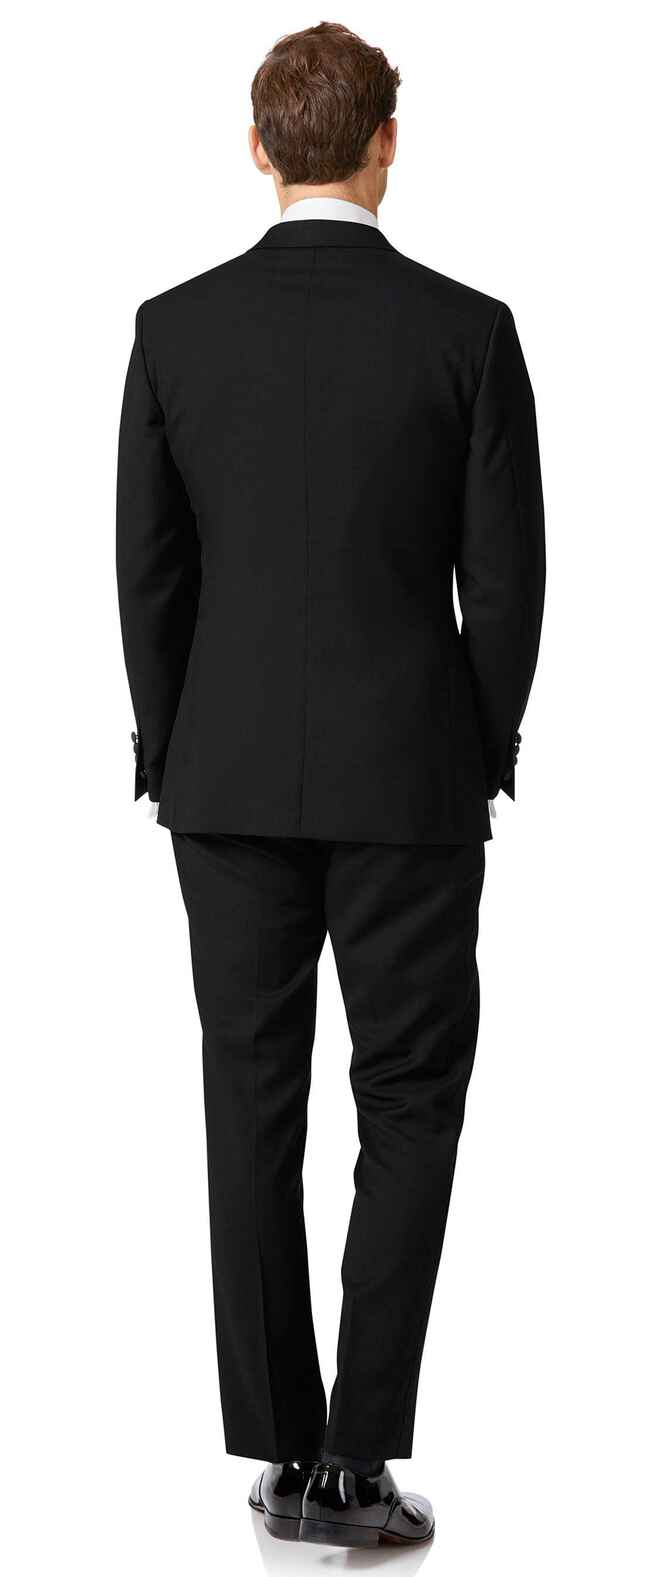 Black slim fit peak lapel dinner suit